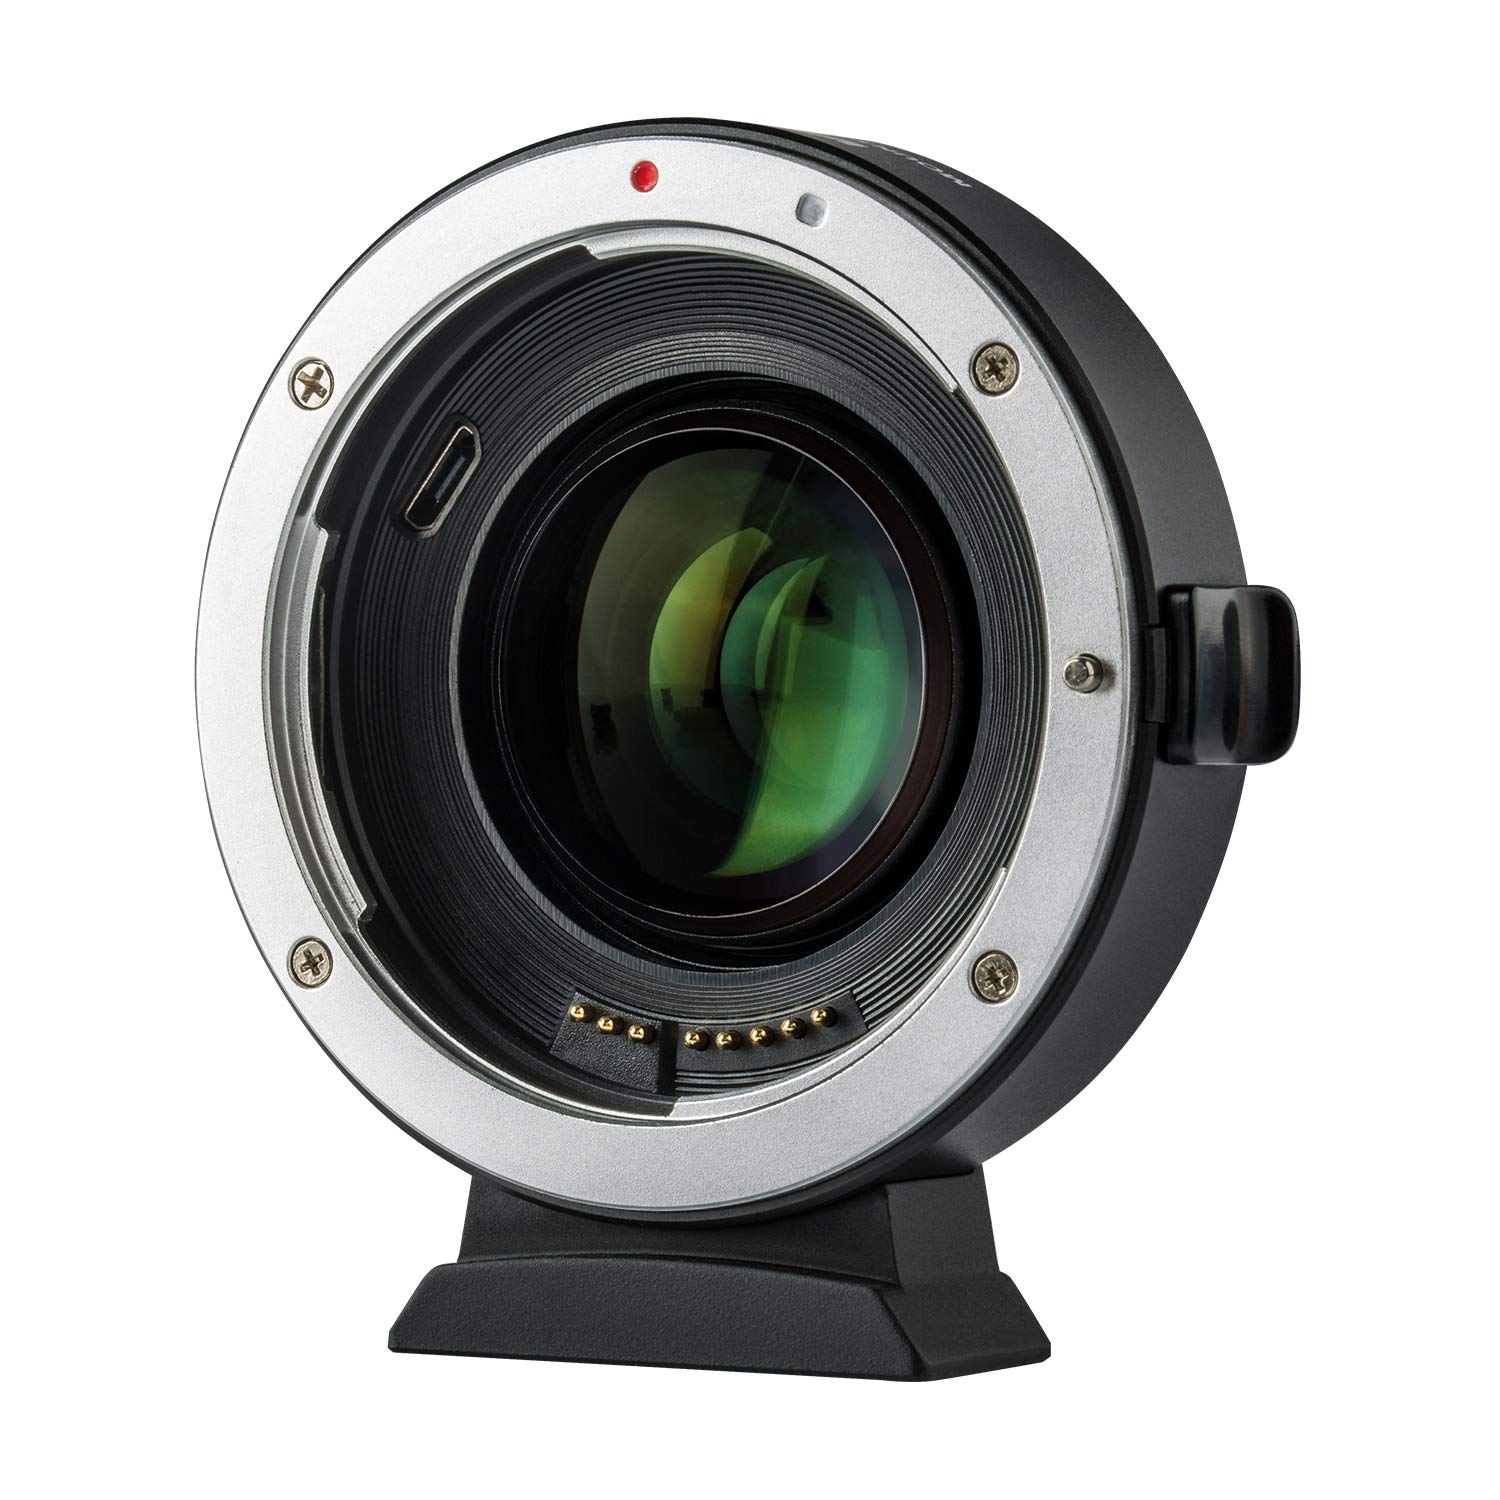 VILTROX EF-EOS M2 Electronic Auto Focus 0.71x Focal Reducer Speed Booster Lens Mount Adapter for Canon EF Mount Lens to Canon EOS-M (EF-M Mount) Mirrorless Camera M2 M3 M5 M6 M10 M50 M100